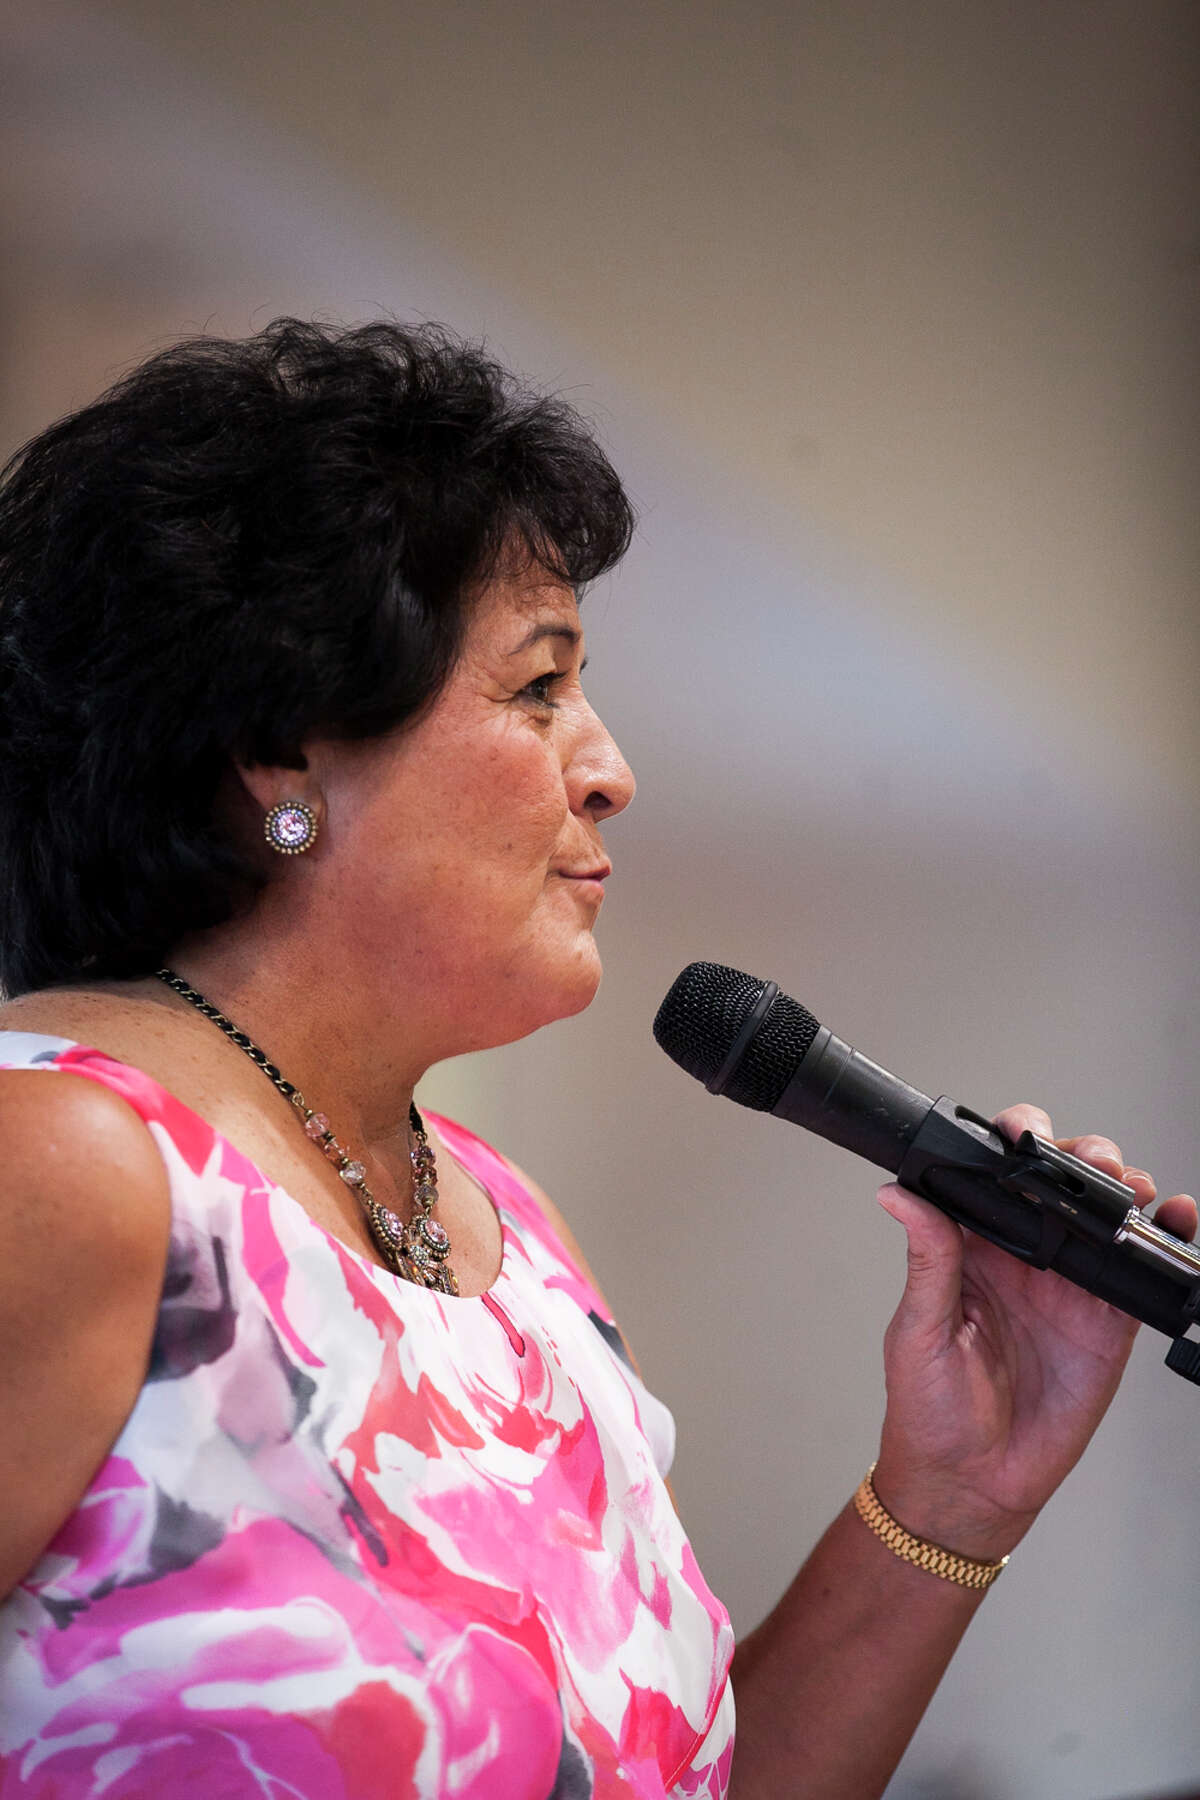 Golf legend Nancy Lopez during a press conference for the induction into the National Hispanic Sports Hall of Fame hosted by Latinos In Action Sports Association October 17, 2014, at San Fernando Community Center.